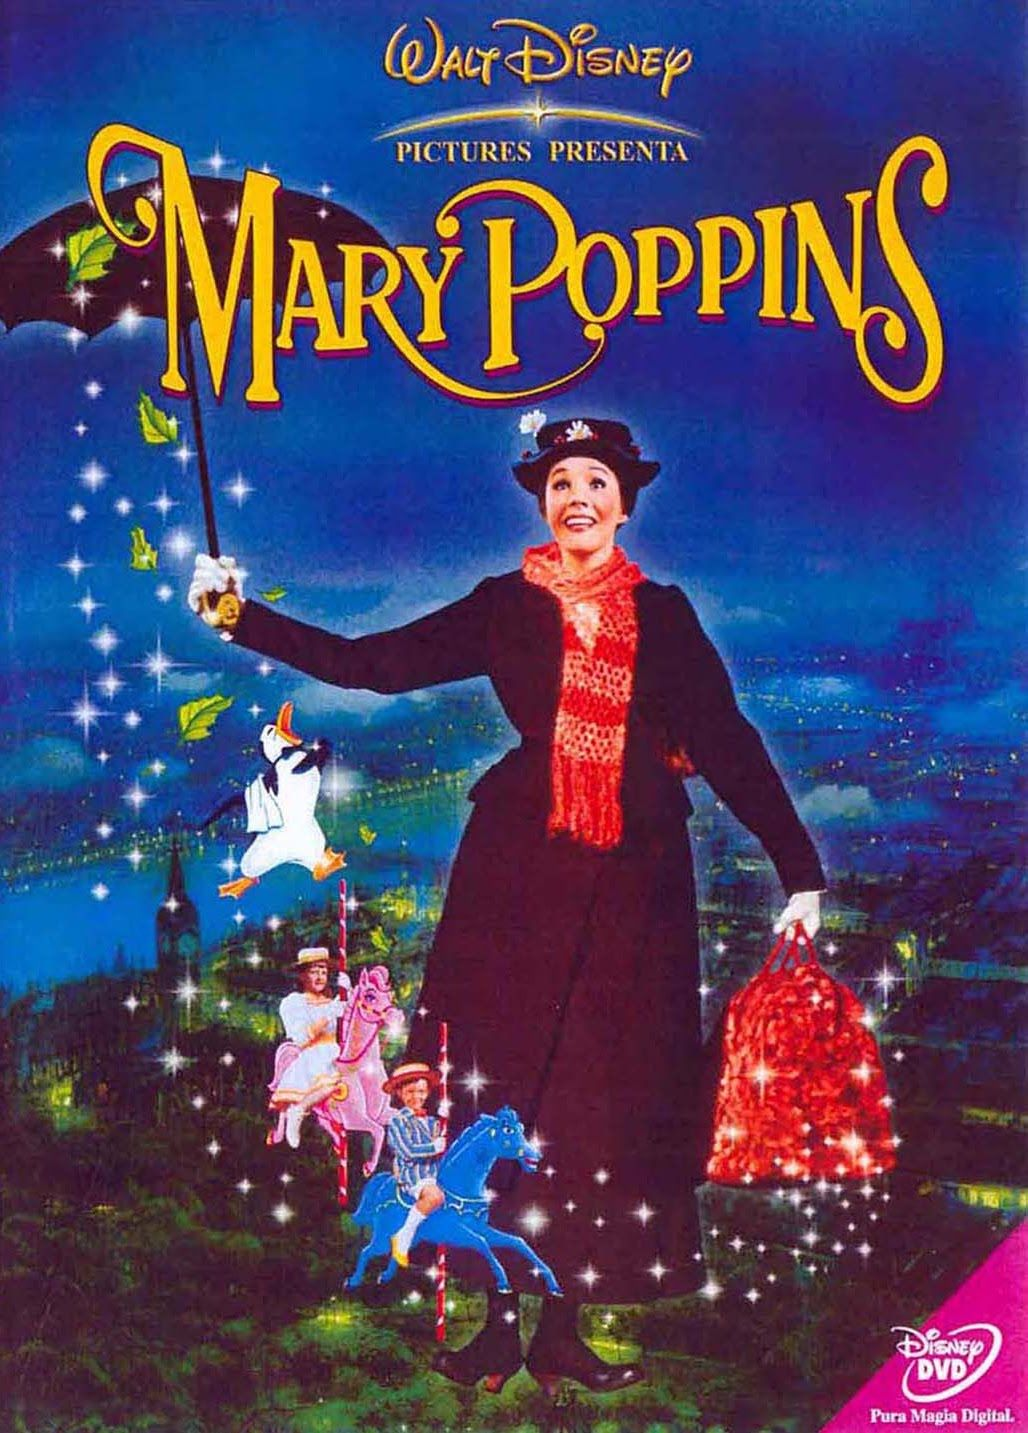 Ver Trailers Y Sinopsis Online Mary Poppins 1964 Mary Poppins Movie Mary Poppins Movie Posters Mary Poppins 1964